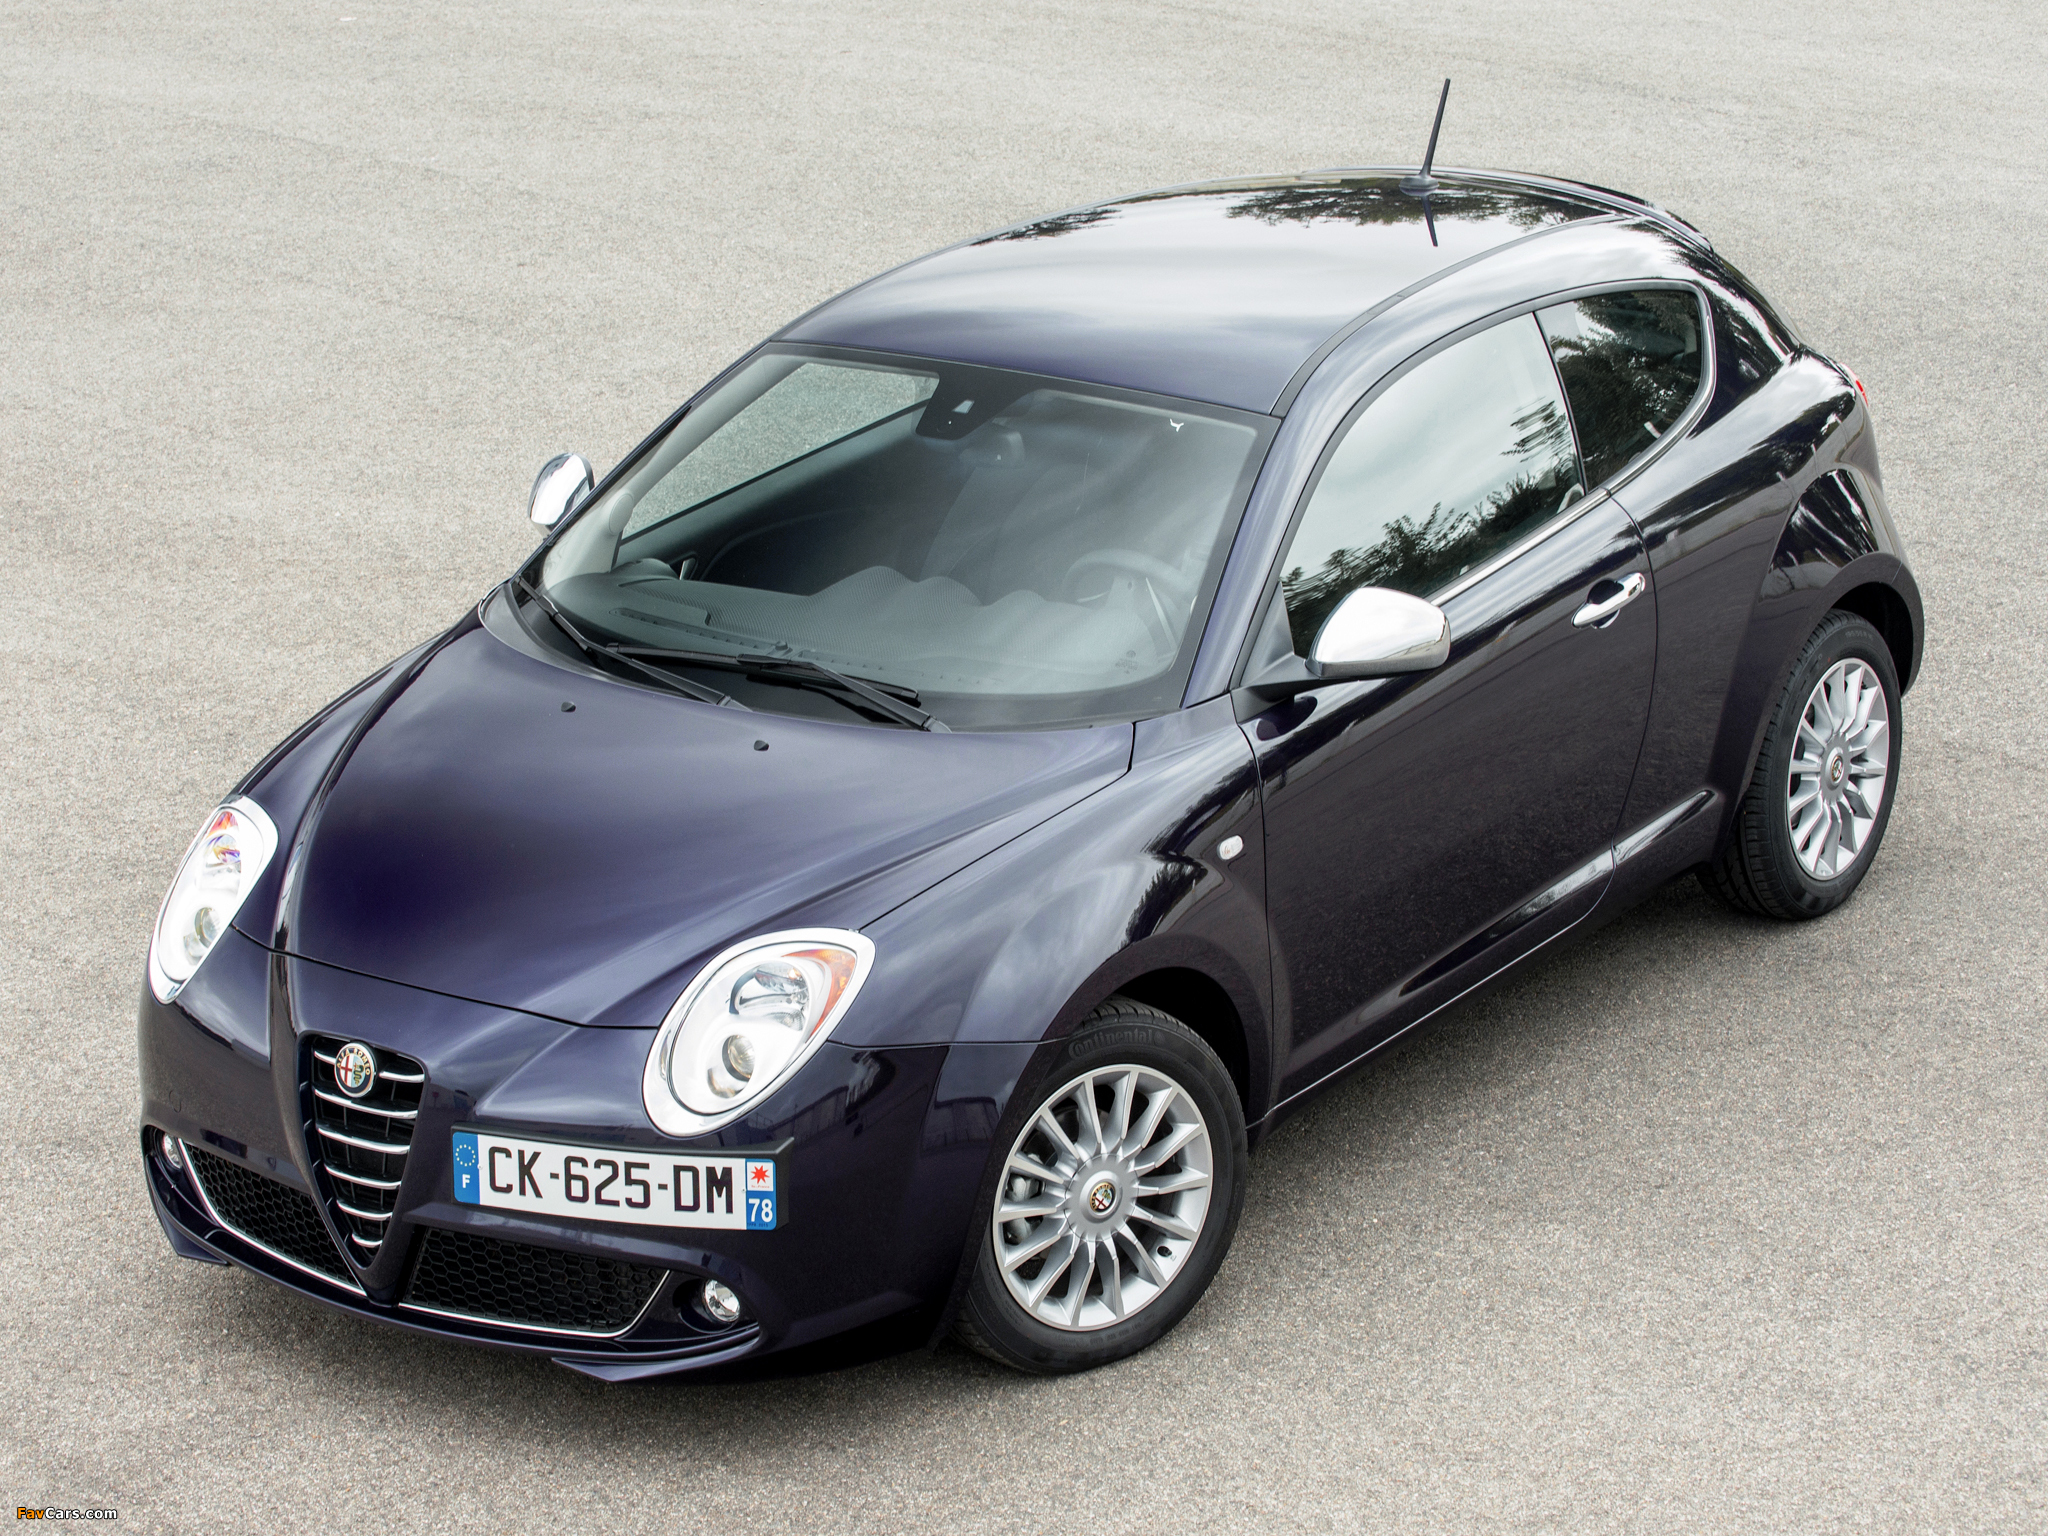 photos of alfa romeo mito twinair 955 2012 2048x1536. Black Bedroom Furniture Sets. Home Design Ideas